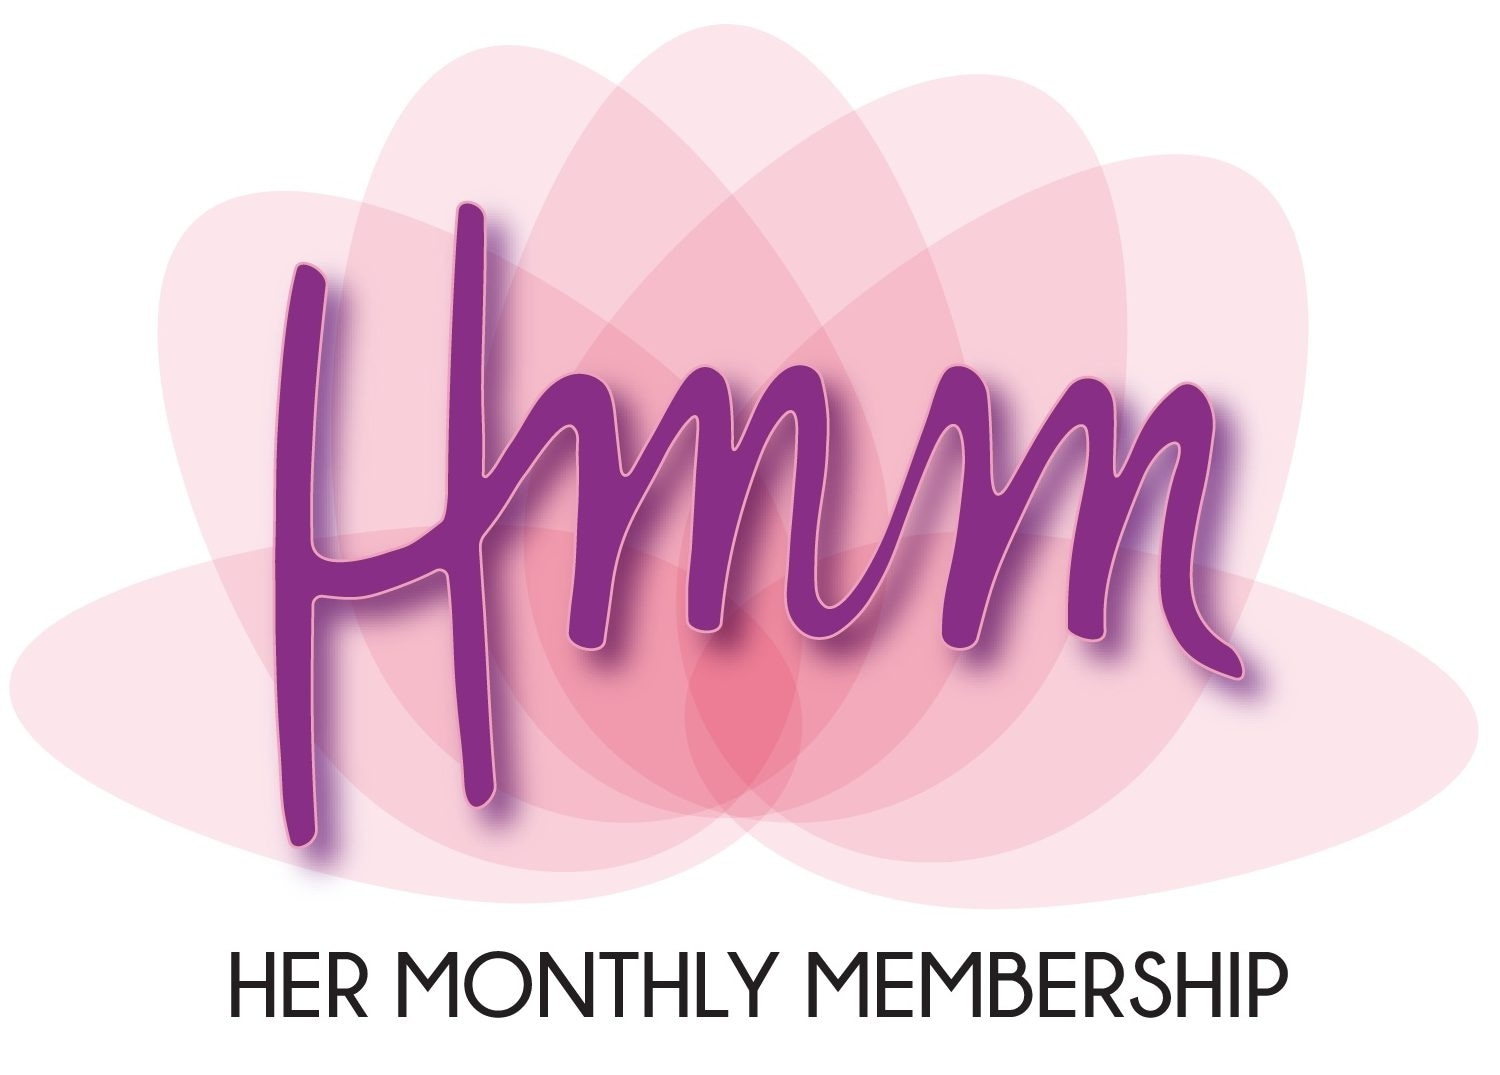 Her Monthly Membership promo codes